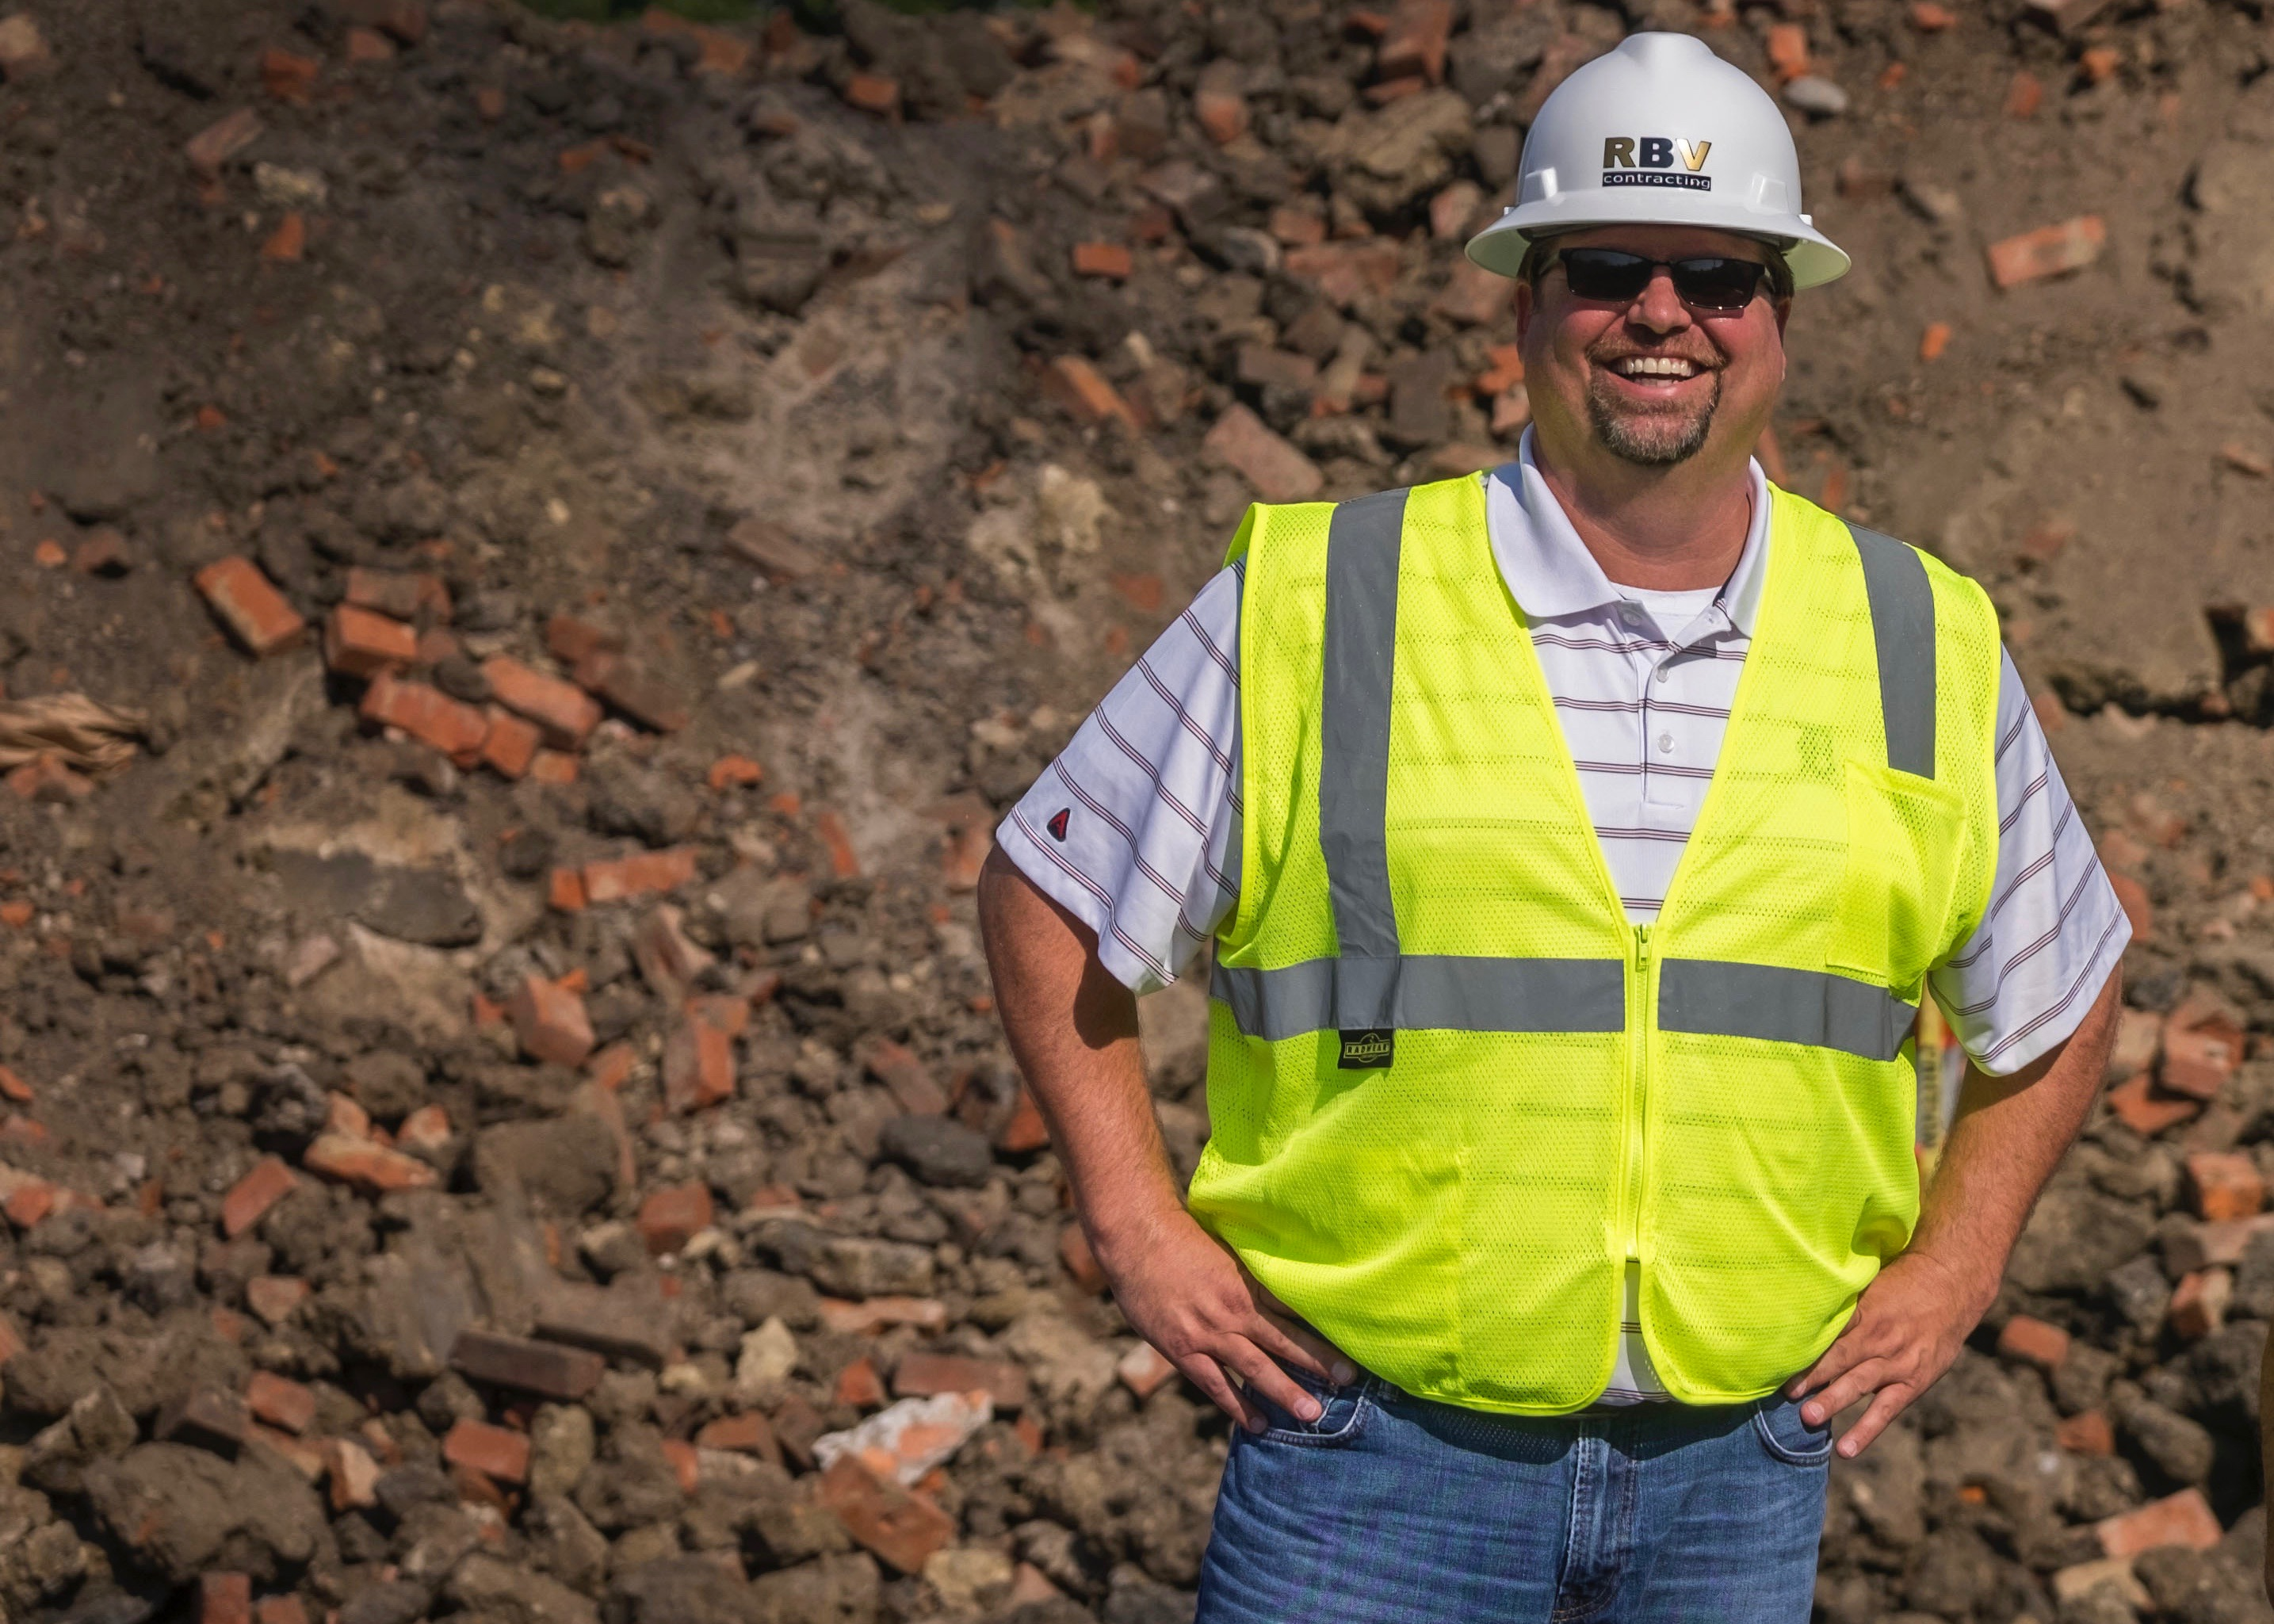 Jim Foucher, the vice president, smiles while wearing a safety vest and hardhat on the job site at Elton Park